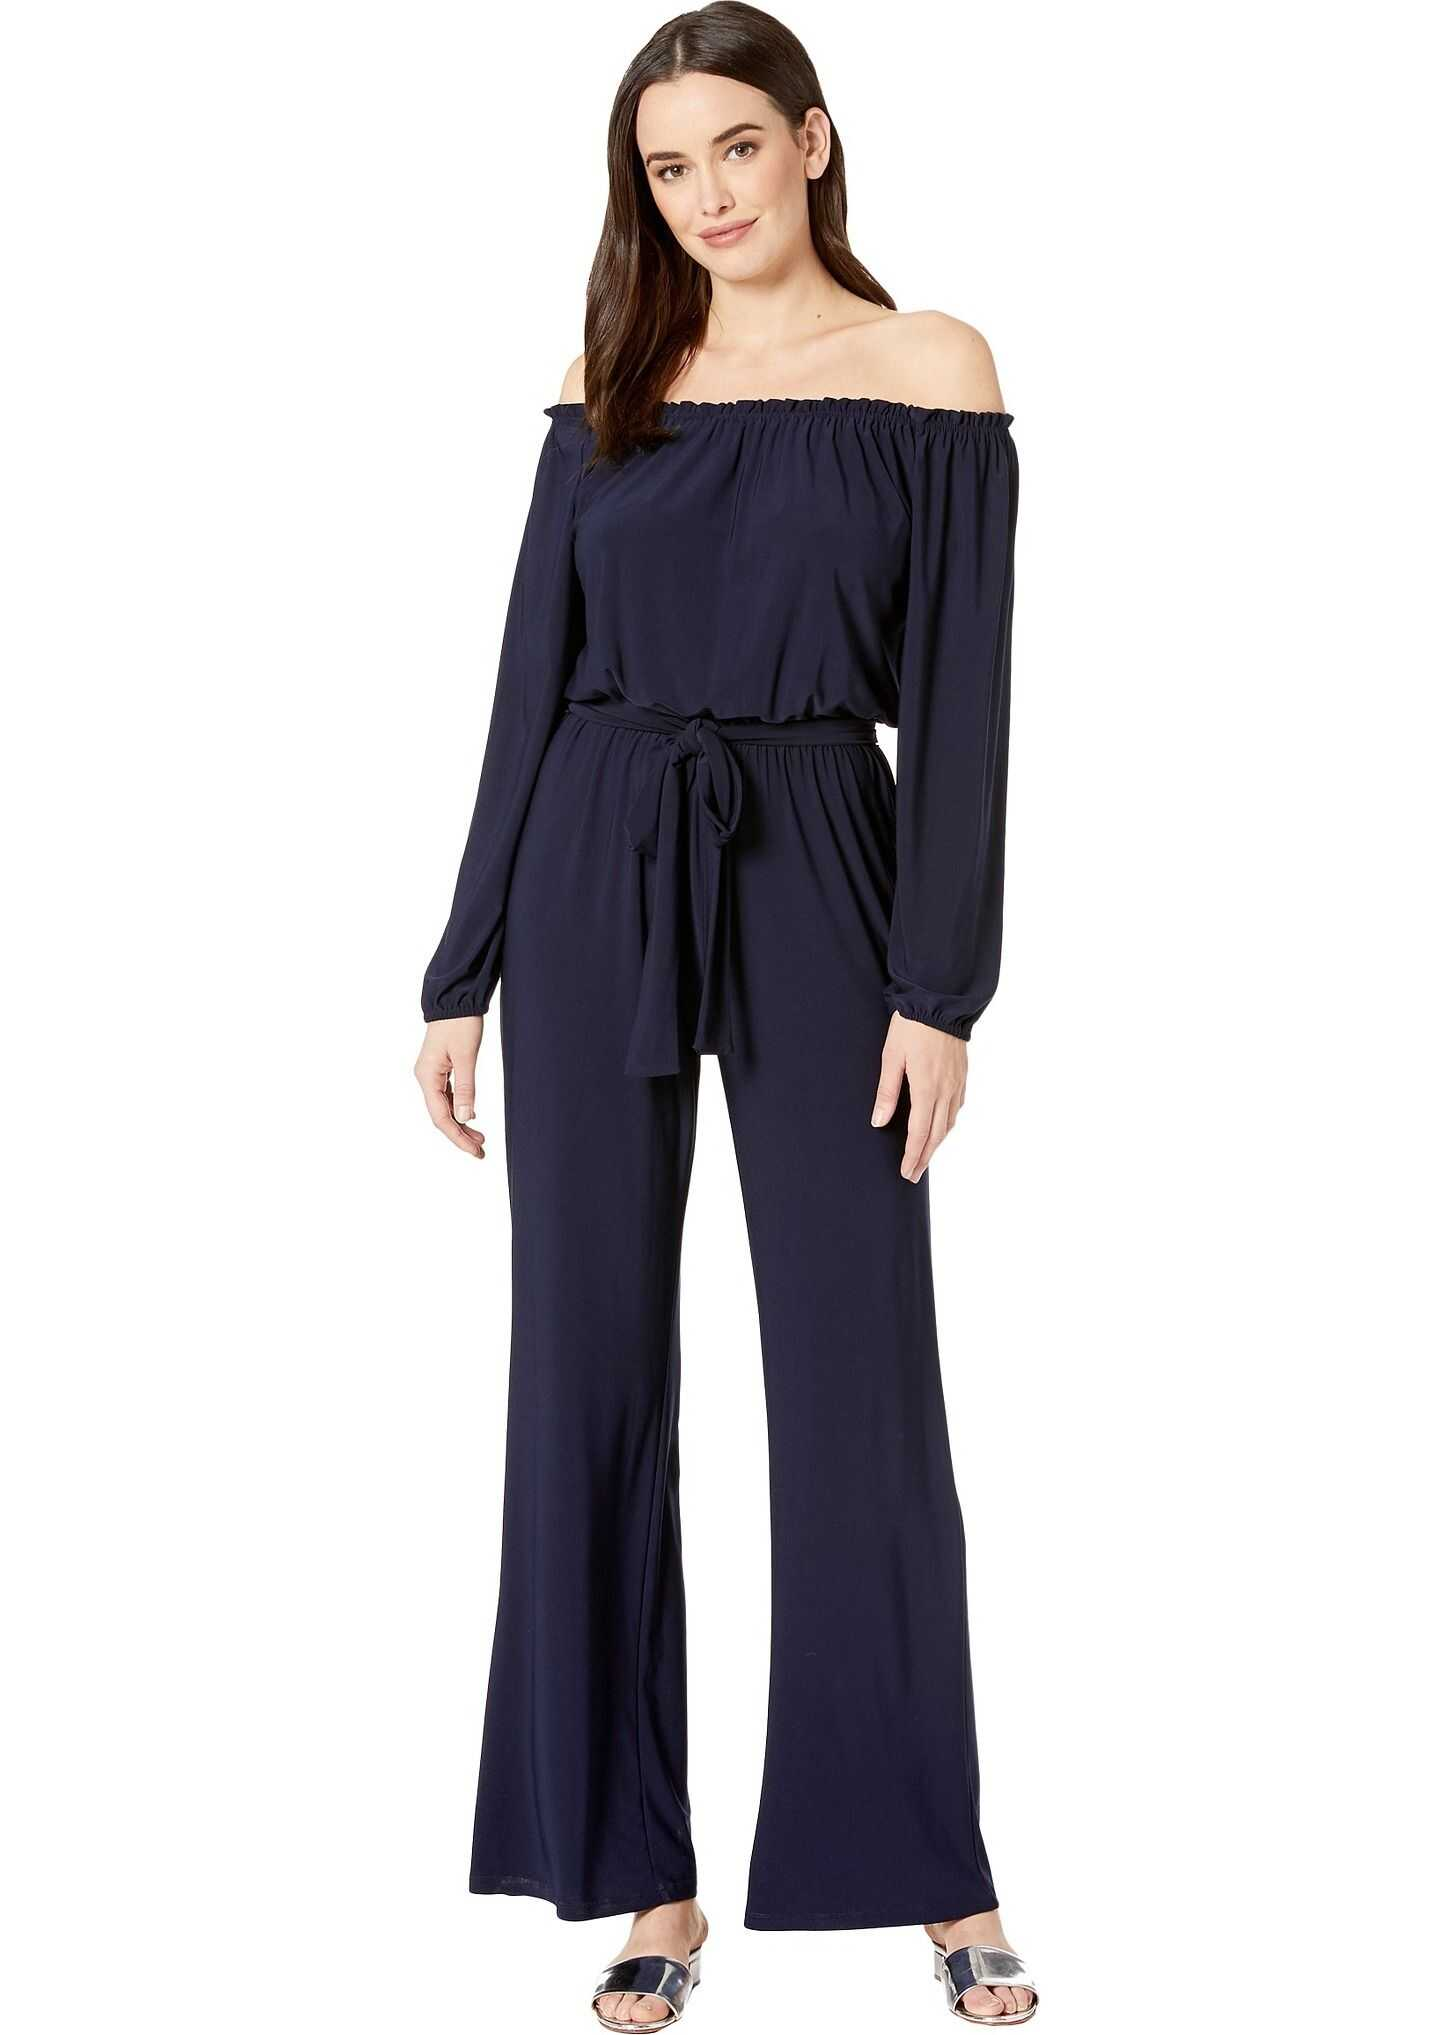 Nine West Ity Matte Jersey Long Sleeve Jumpsuit with Sash Navy